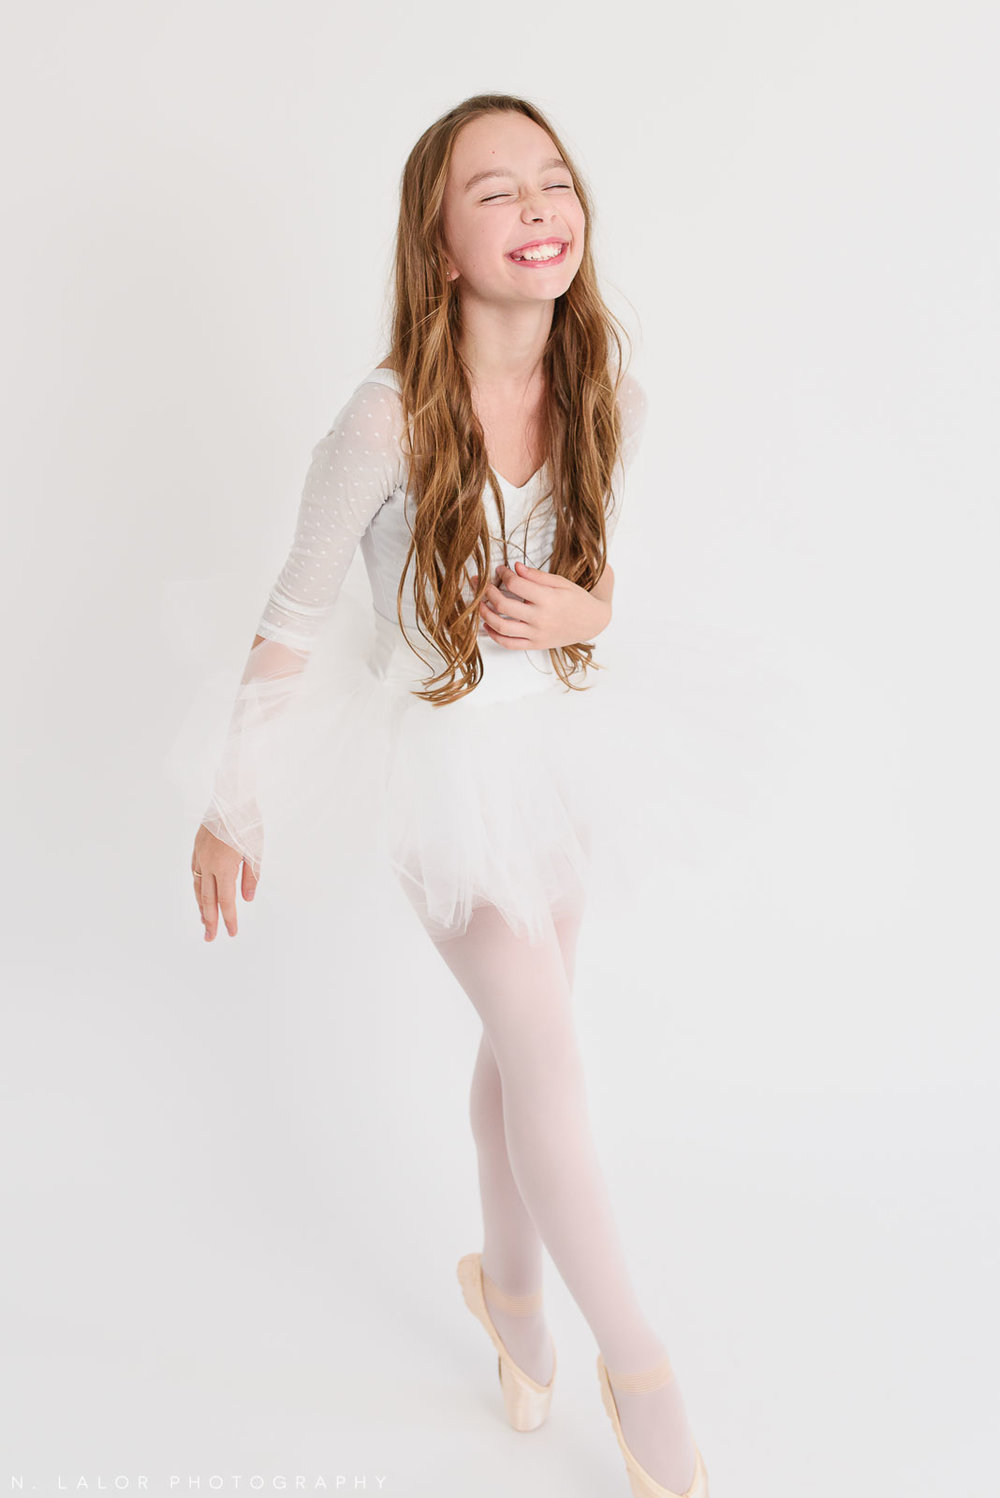 Having a blast. Tween ballerina photoshoot with N. Lalor Photography. Greenwich, Connecticut.